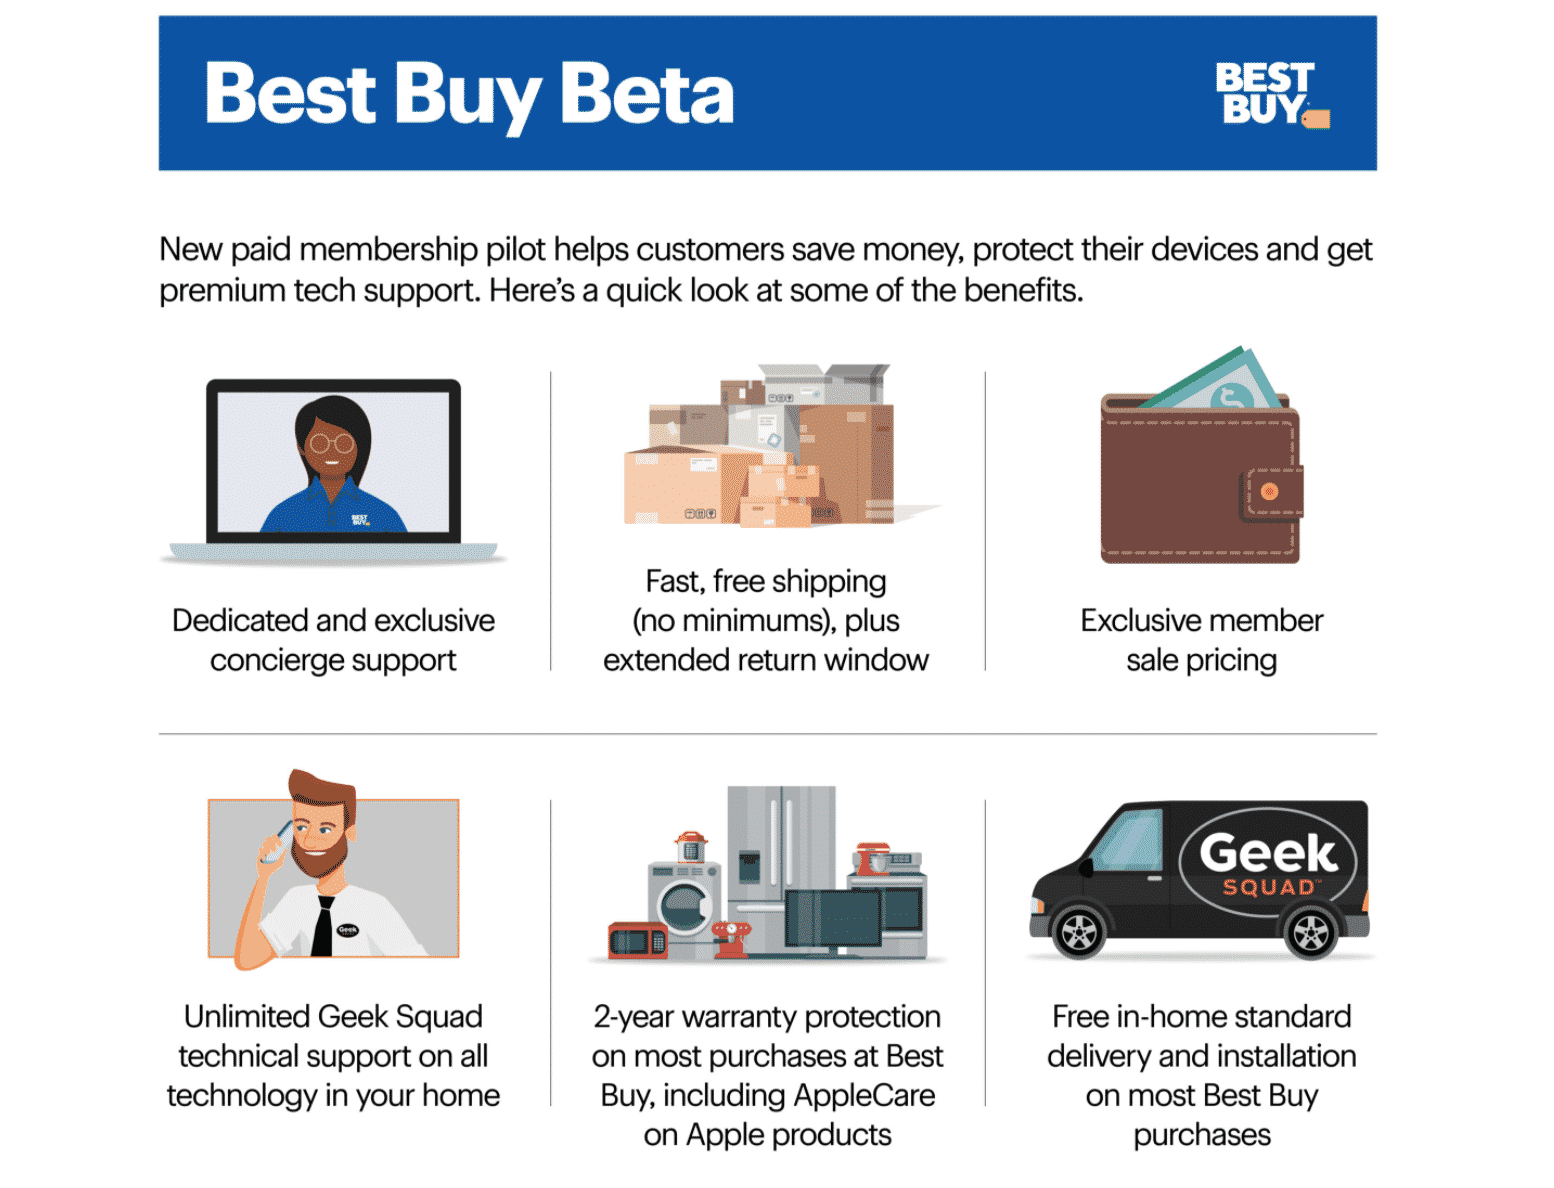 Las ventajas de Best Buy Beta